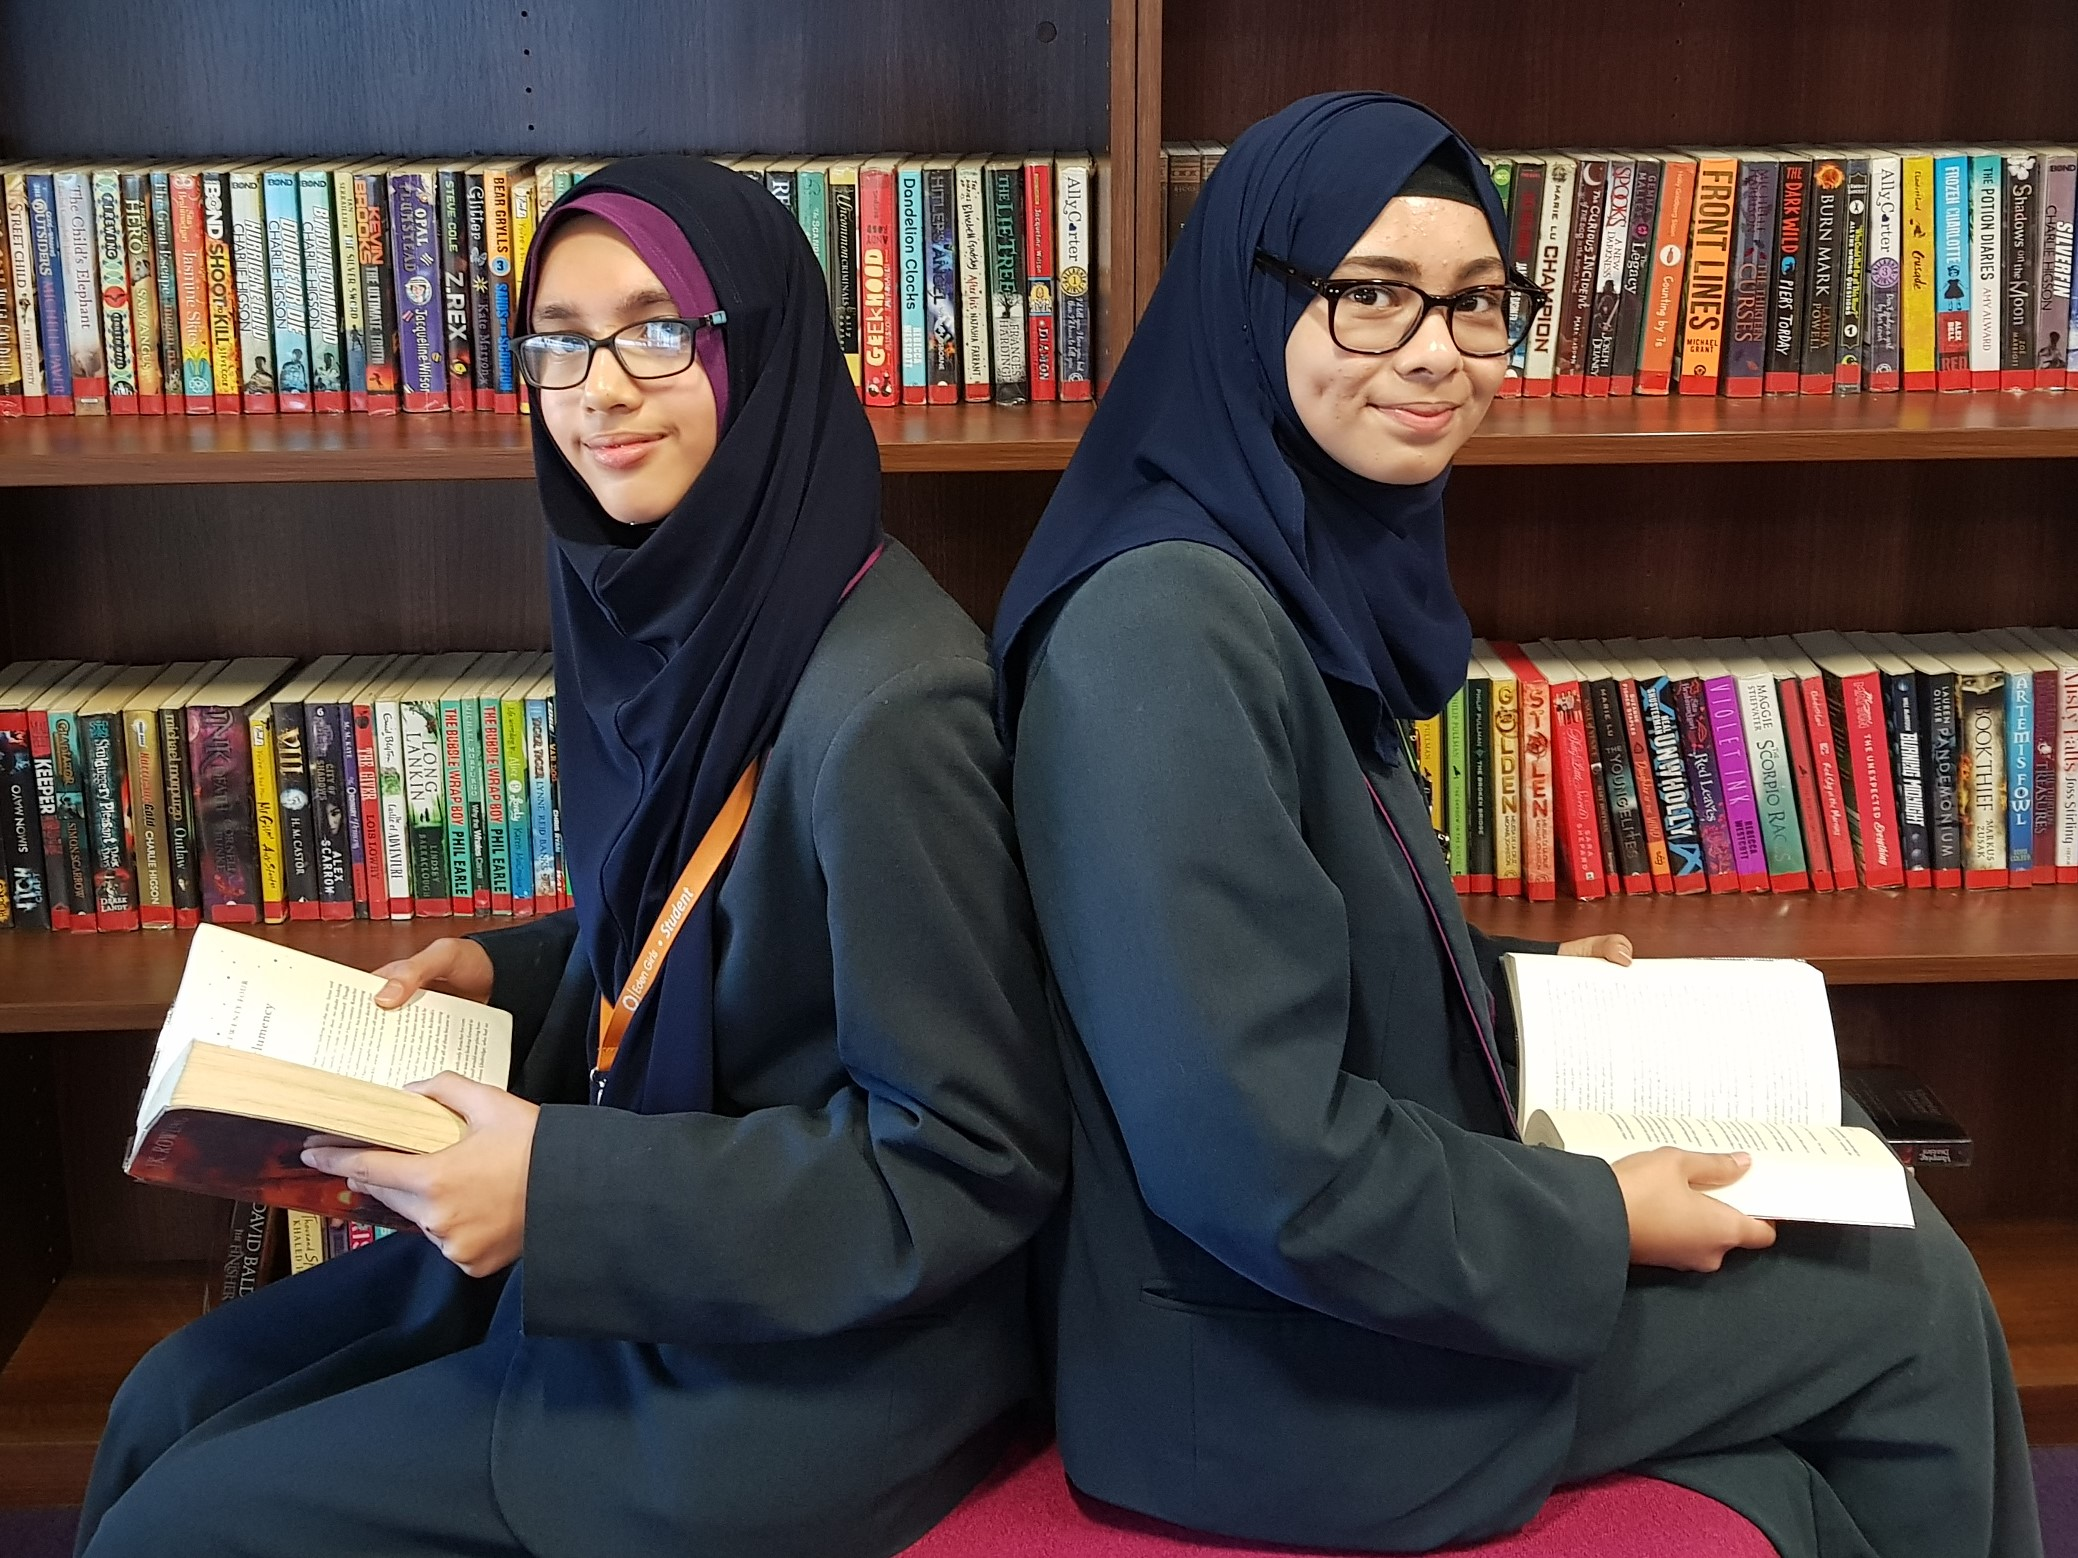 Students Rabia Shaikh and Badriyah Islam put their prize money towards new books for their school library.